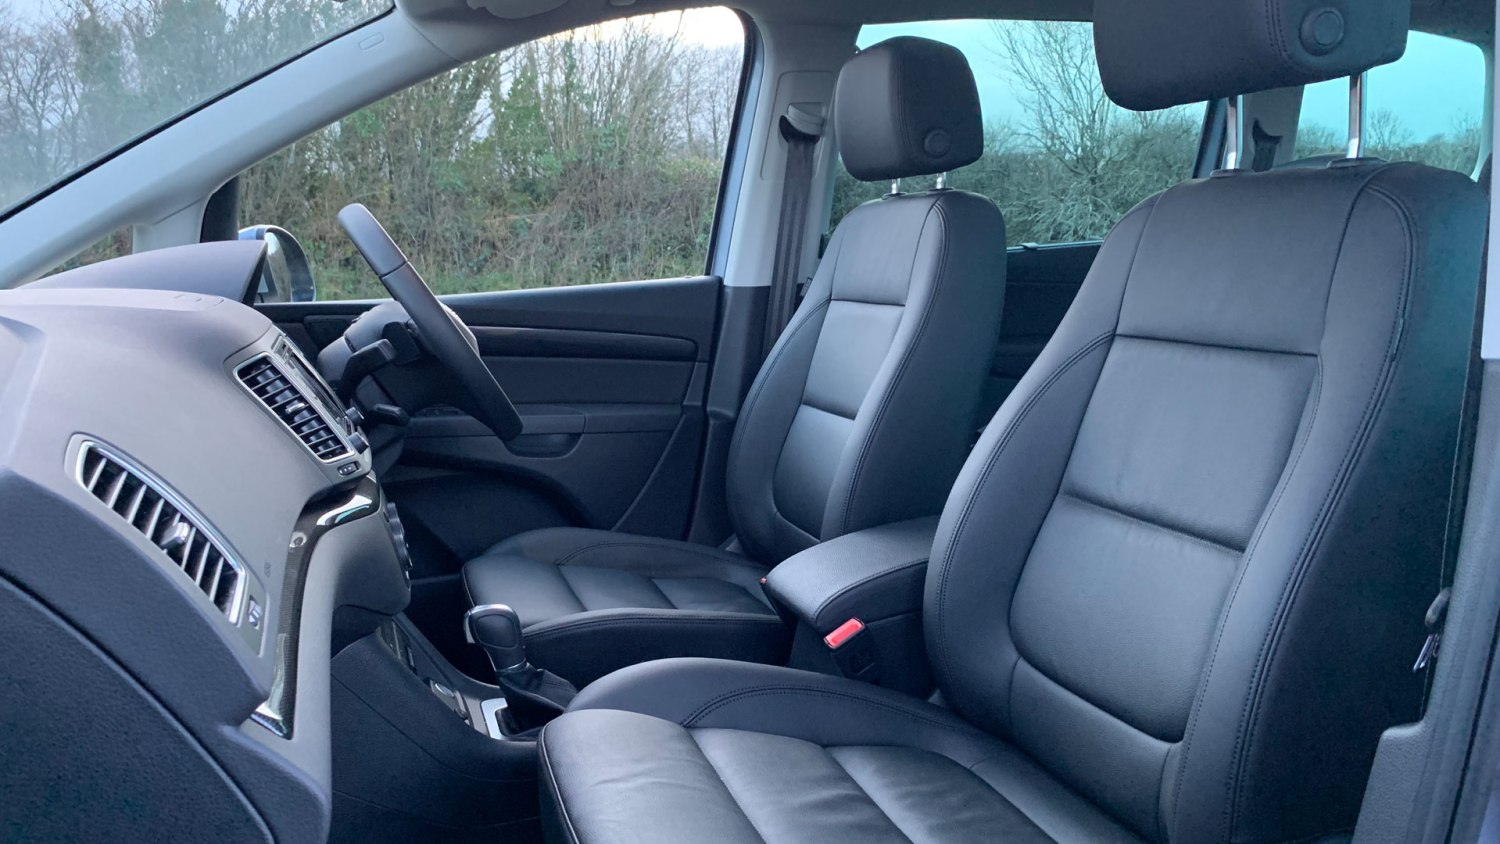 Seat Alhambra front seats